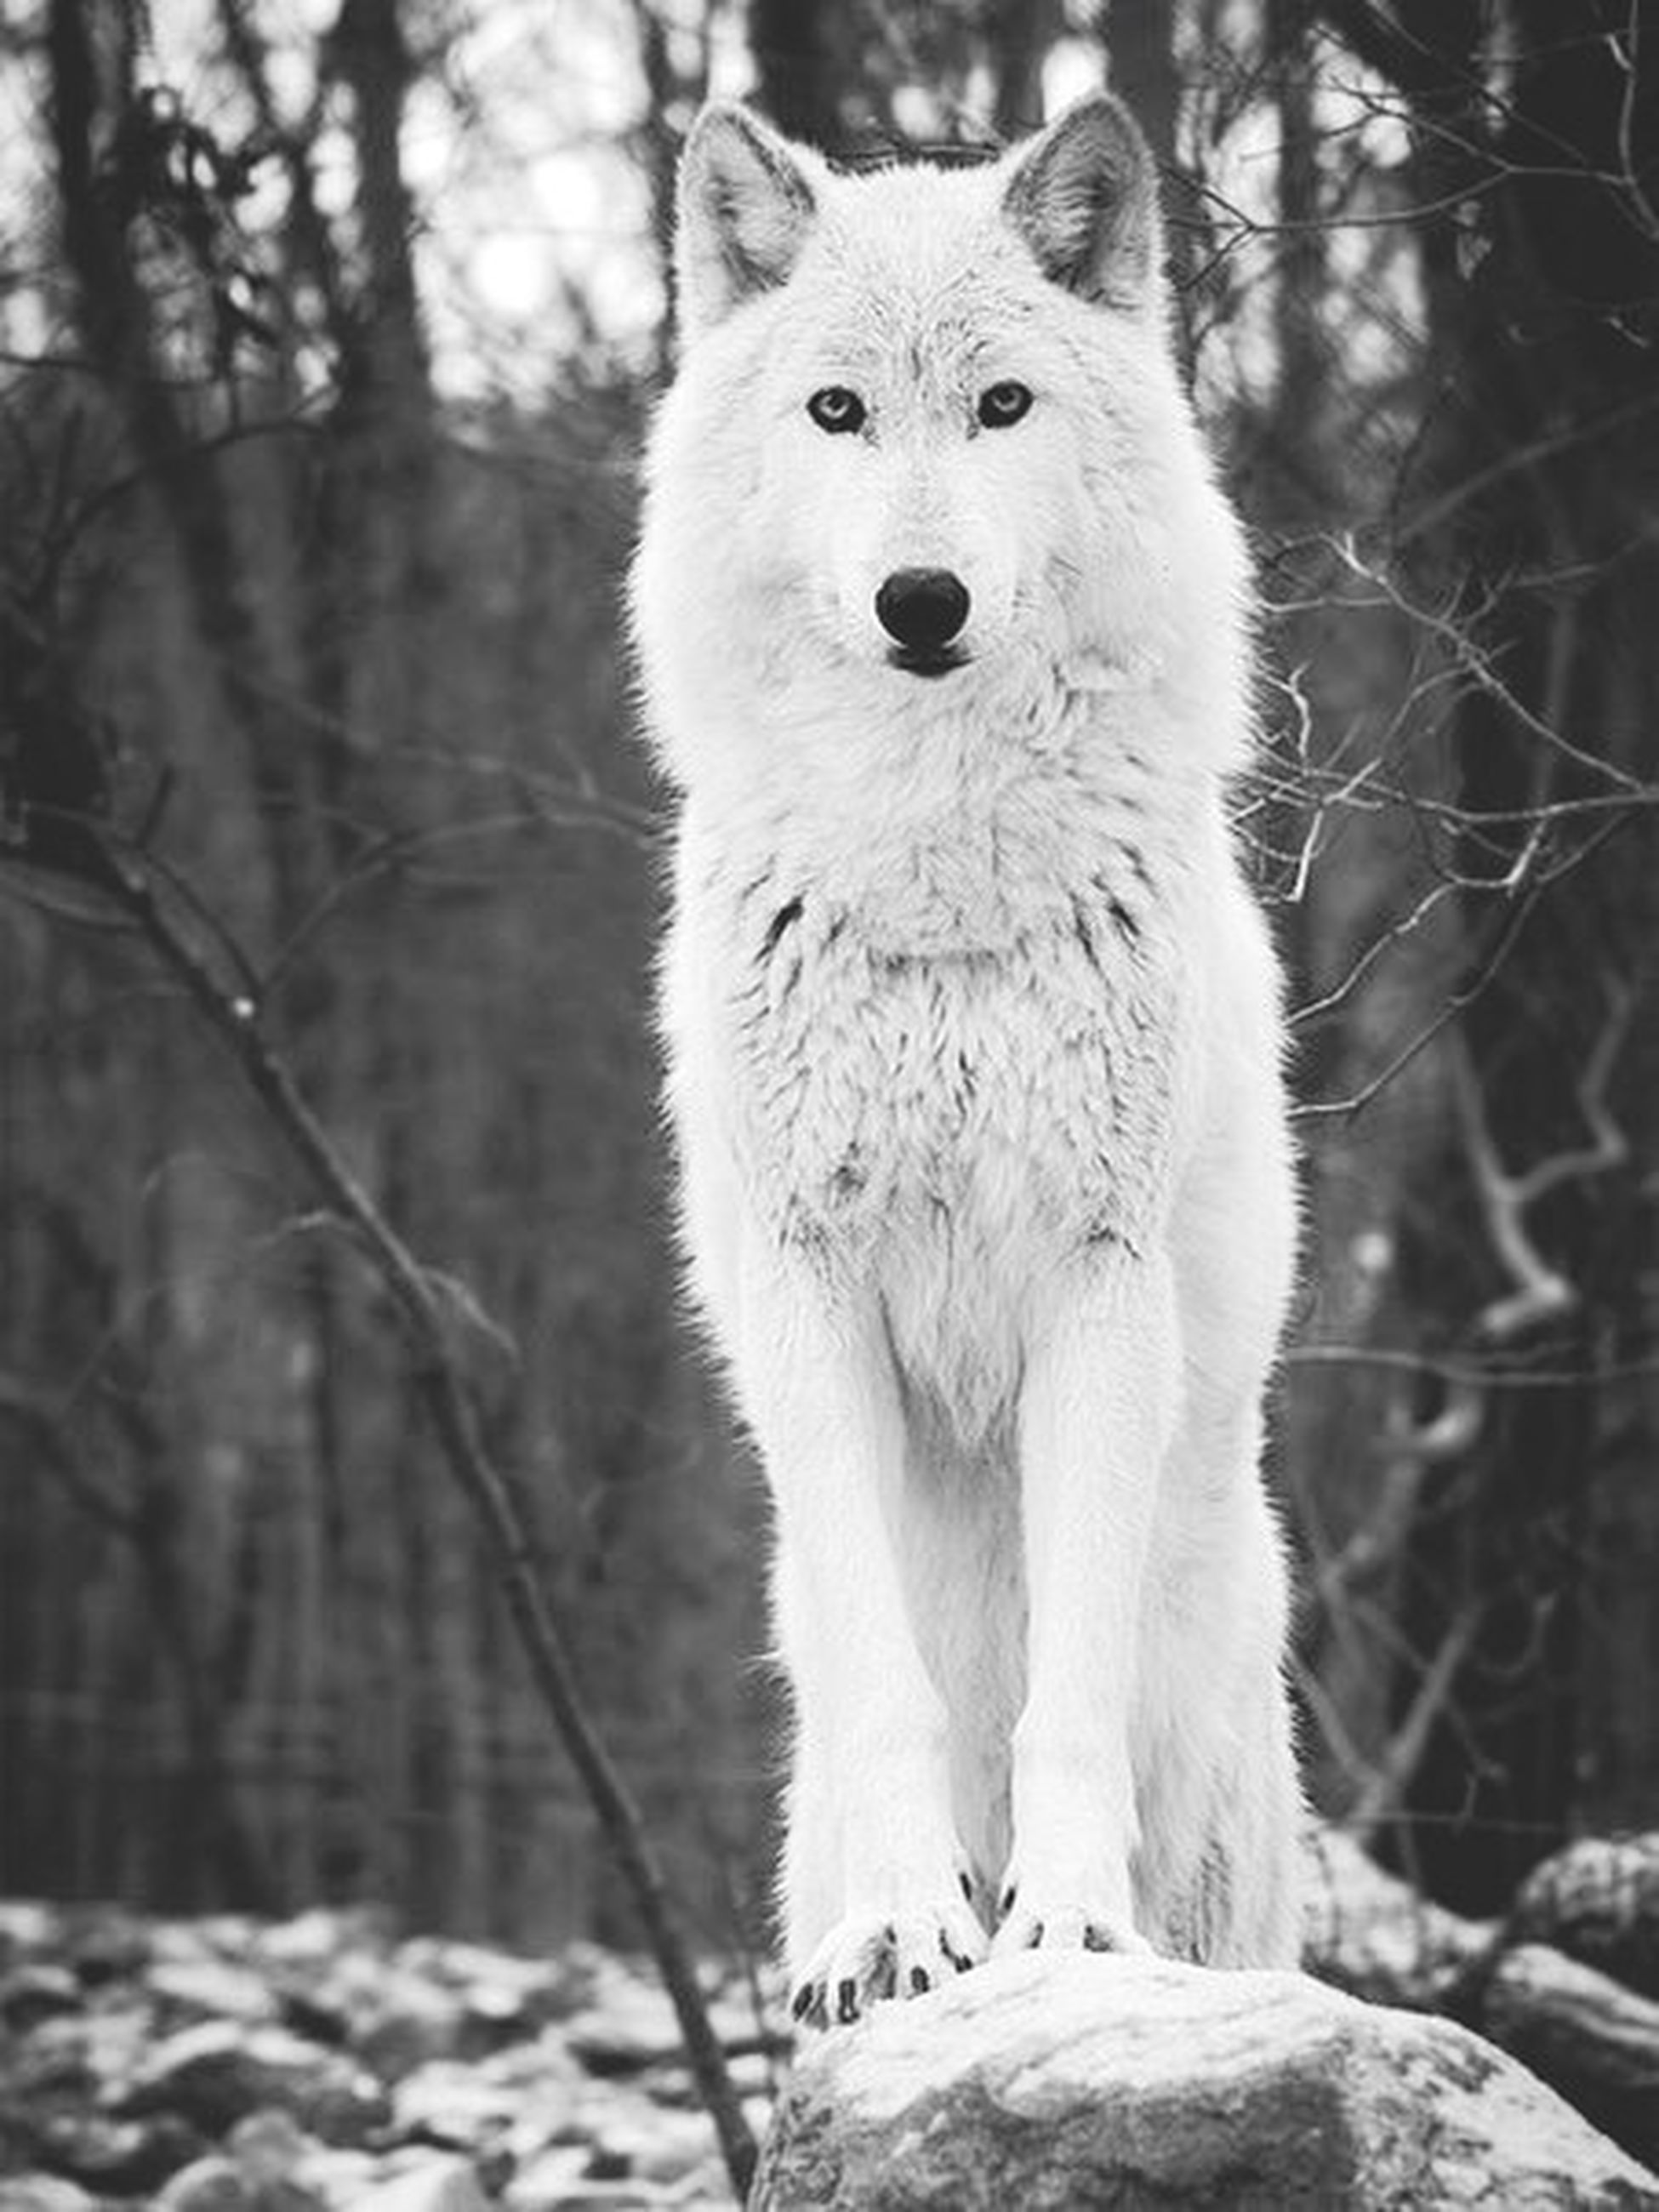 animal themes, one animal, focus on foreground, mammal, portrait, looking at camera, sitting, white color, front view, wildlife, close-up, forest, tree, pets, nature, animals in the wild, outdoors, day, no people